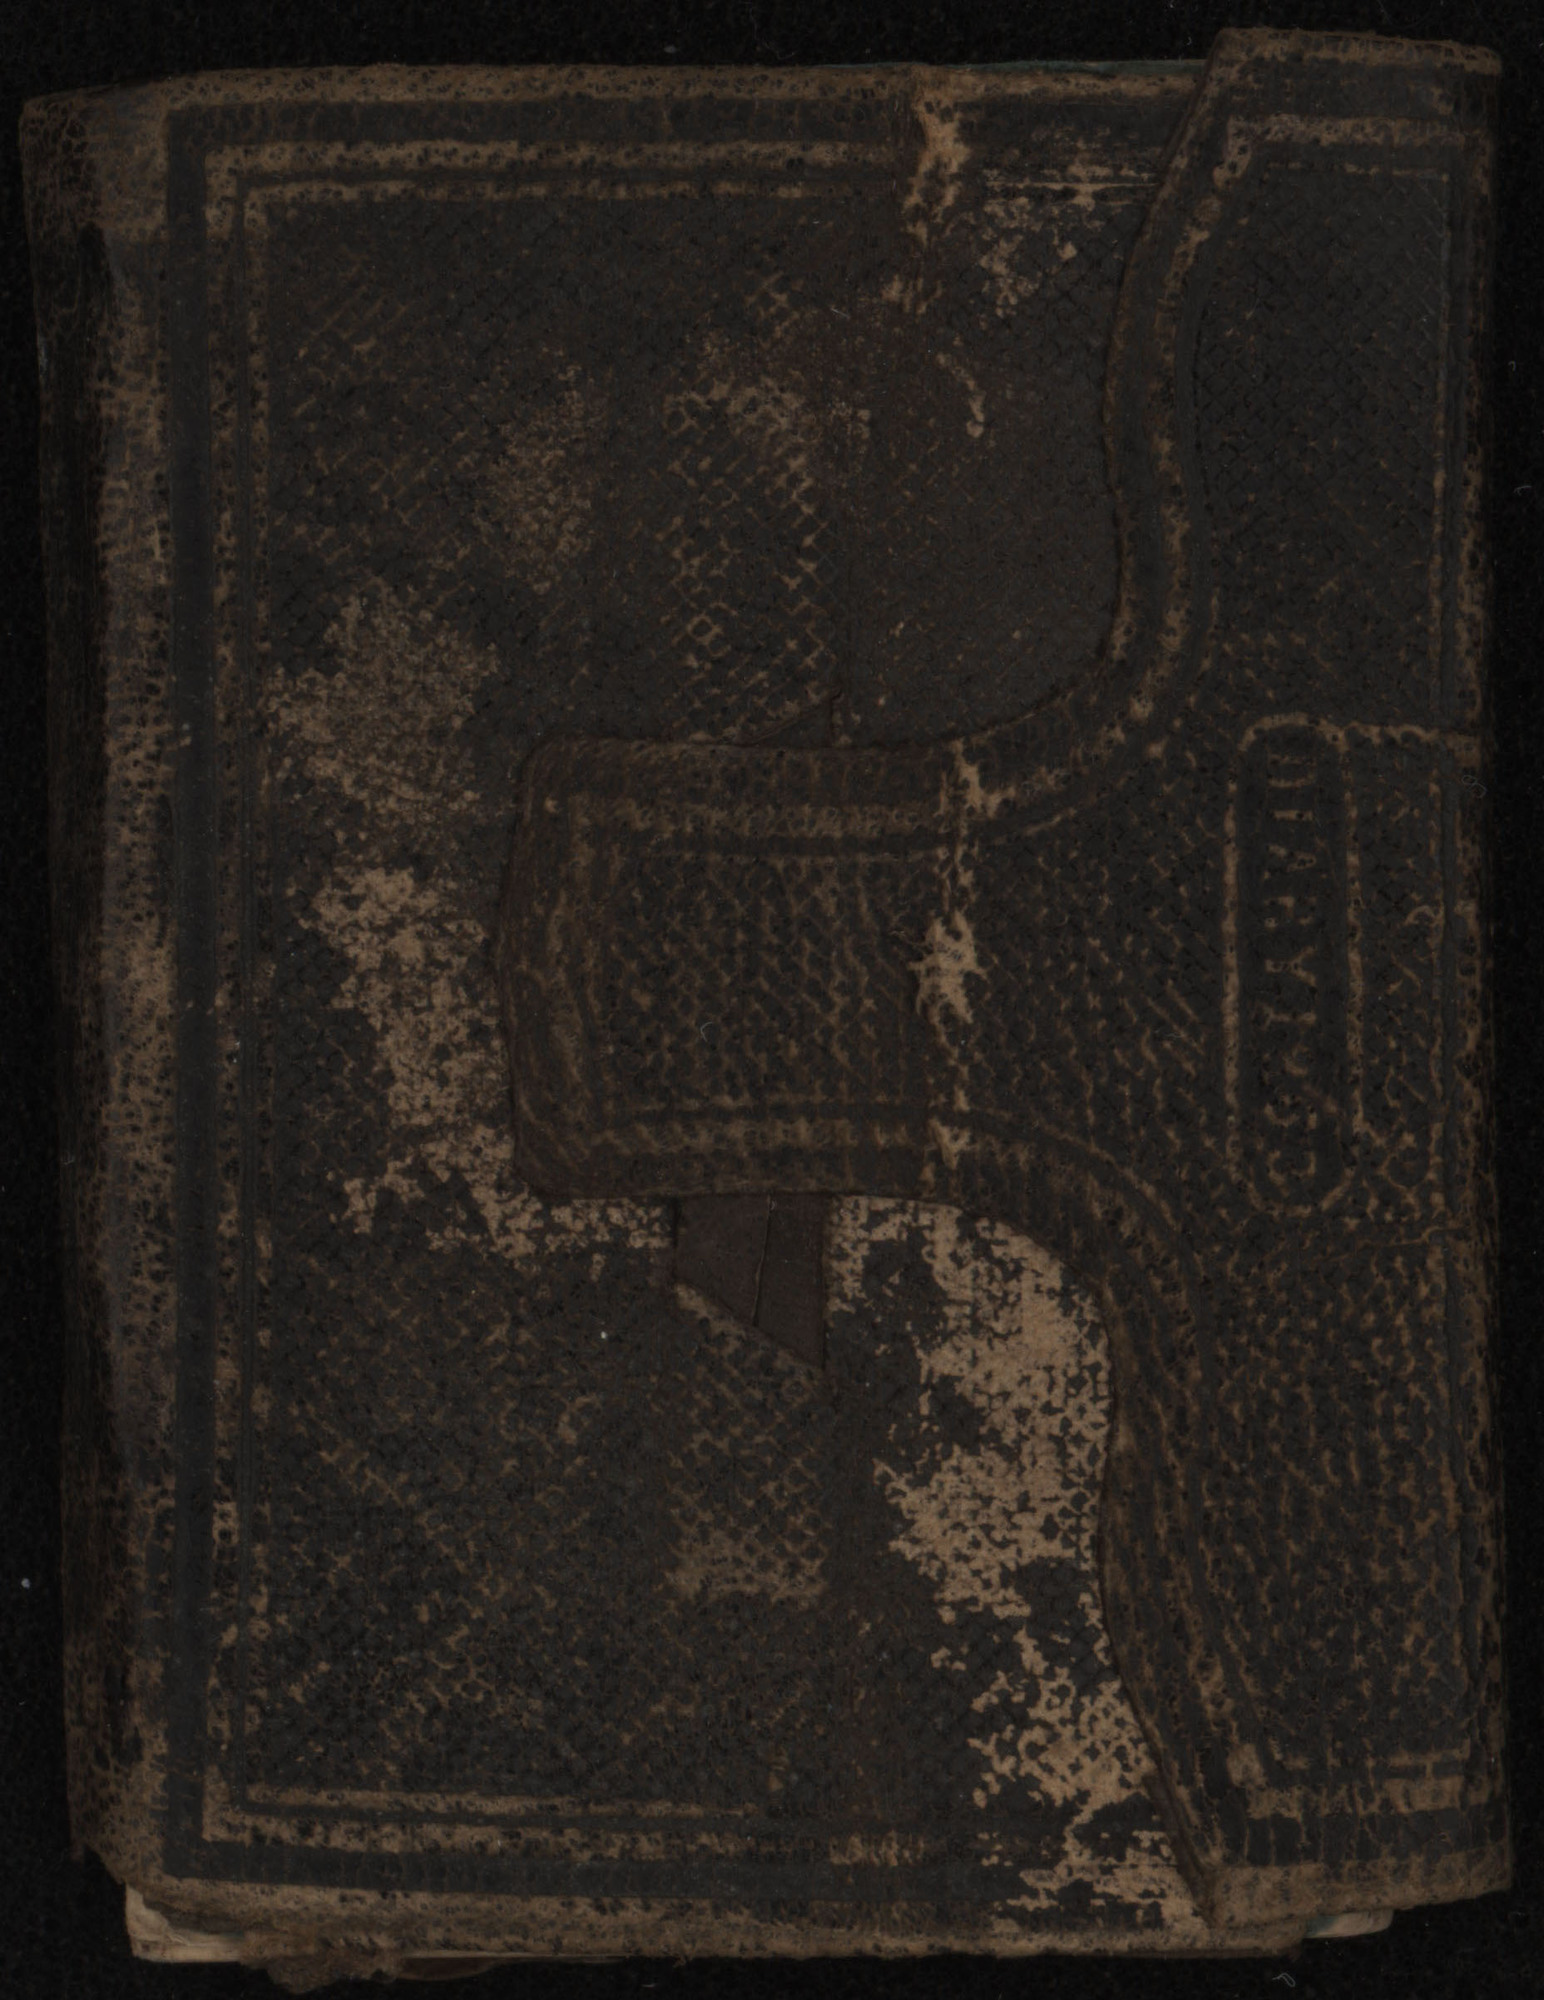 http://spec.lib.vt.edu/pickup/Omeka_upload/Ms2011-103_SquireHenry_Diary_JPEGs/Ms2011-103_Henry_Squire_Diary_frontcover.jpg